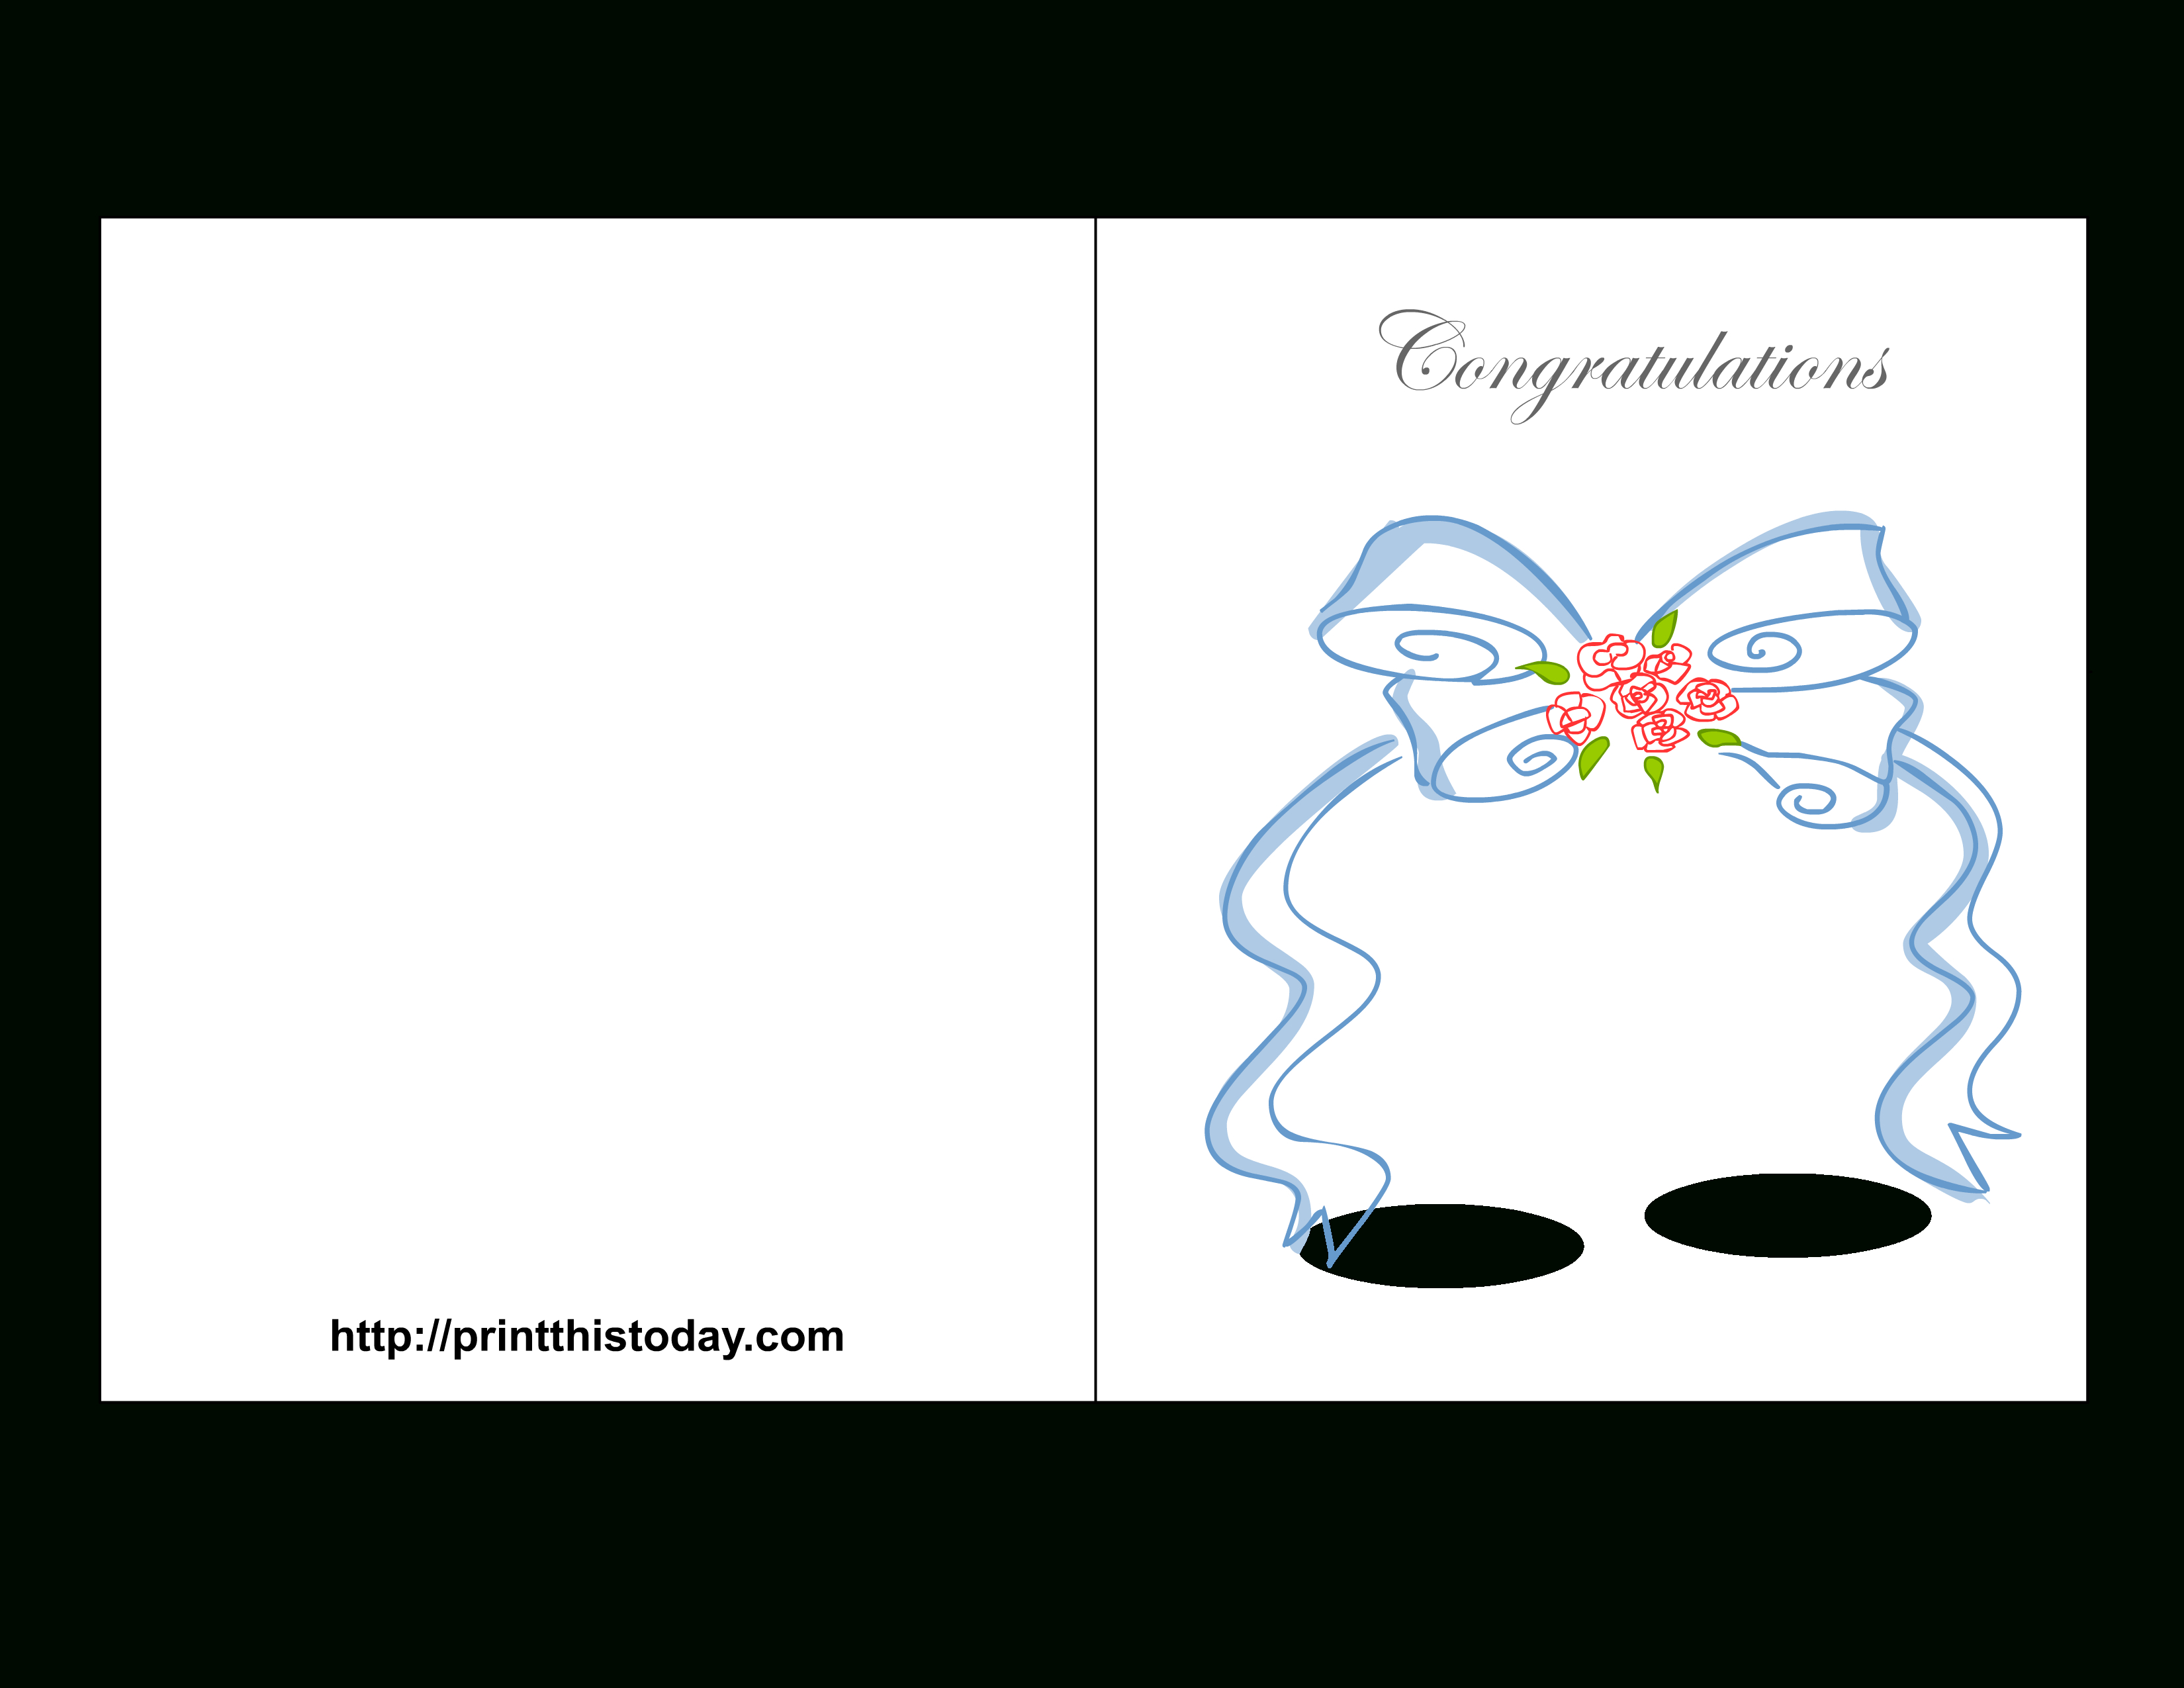 Free Printable Wedding Congratulations Cards - Free Printable Wedding Cards